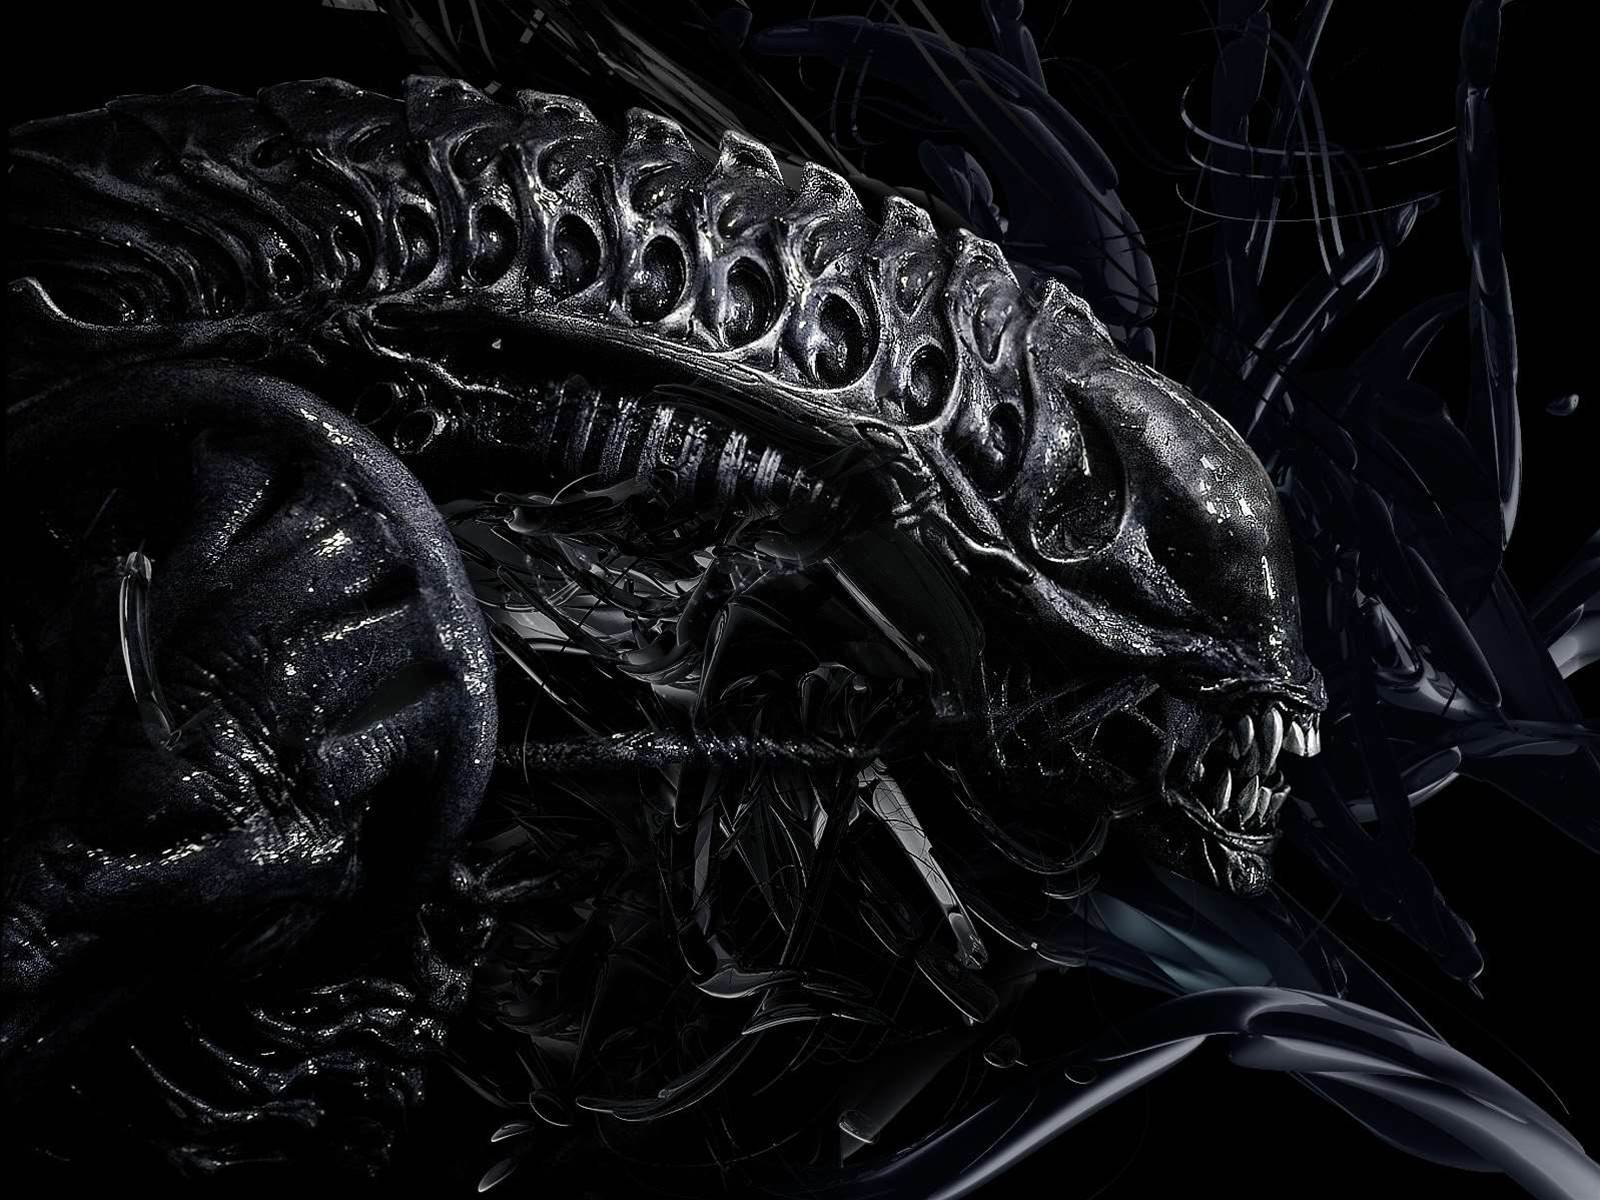 Creative Assembly developing Alien game, we long for Alien: Total War